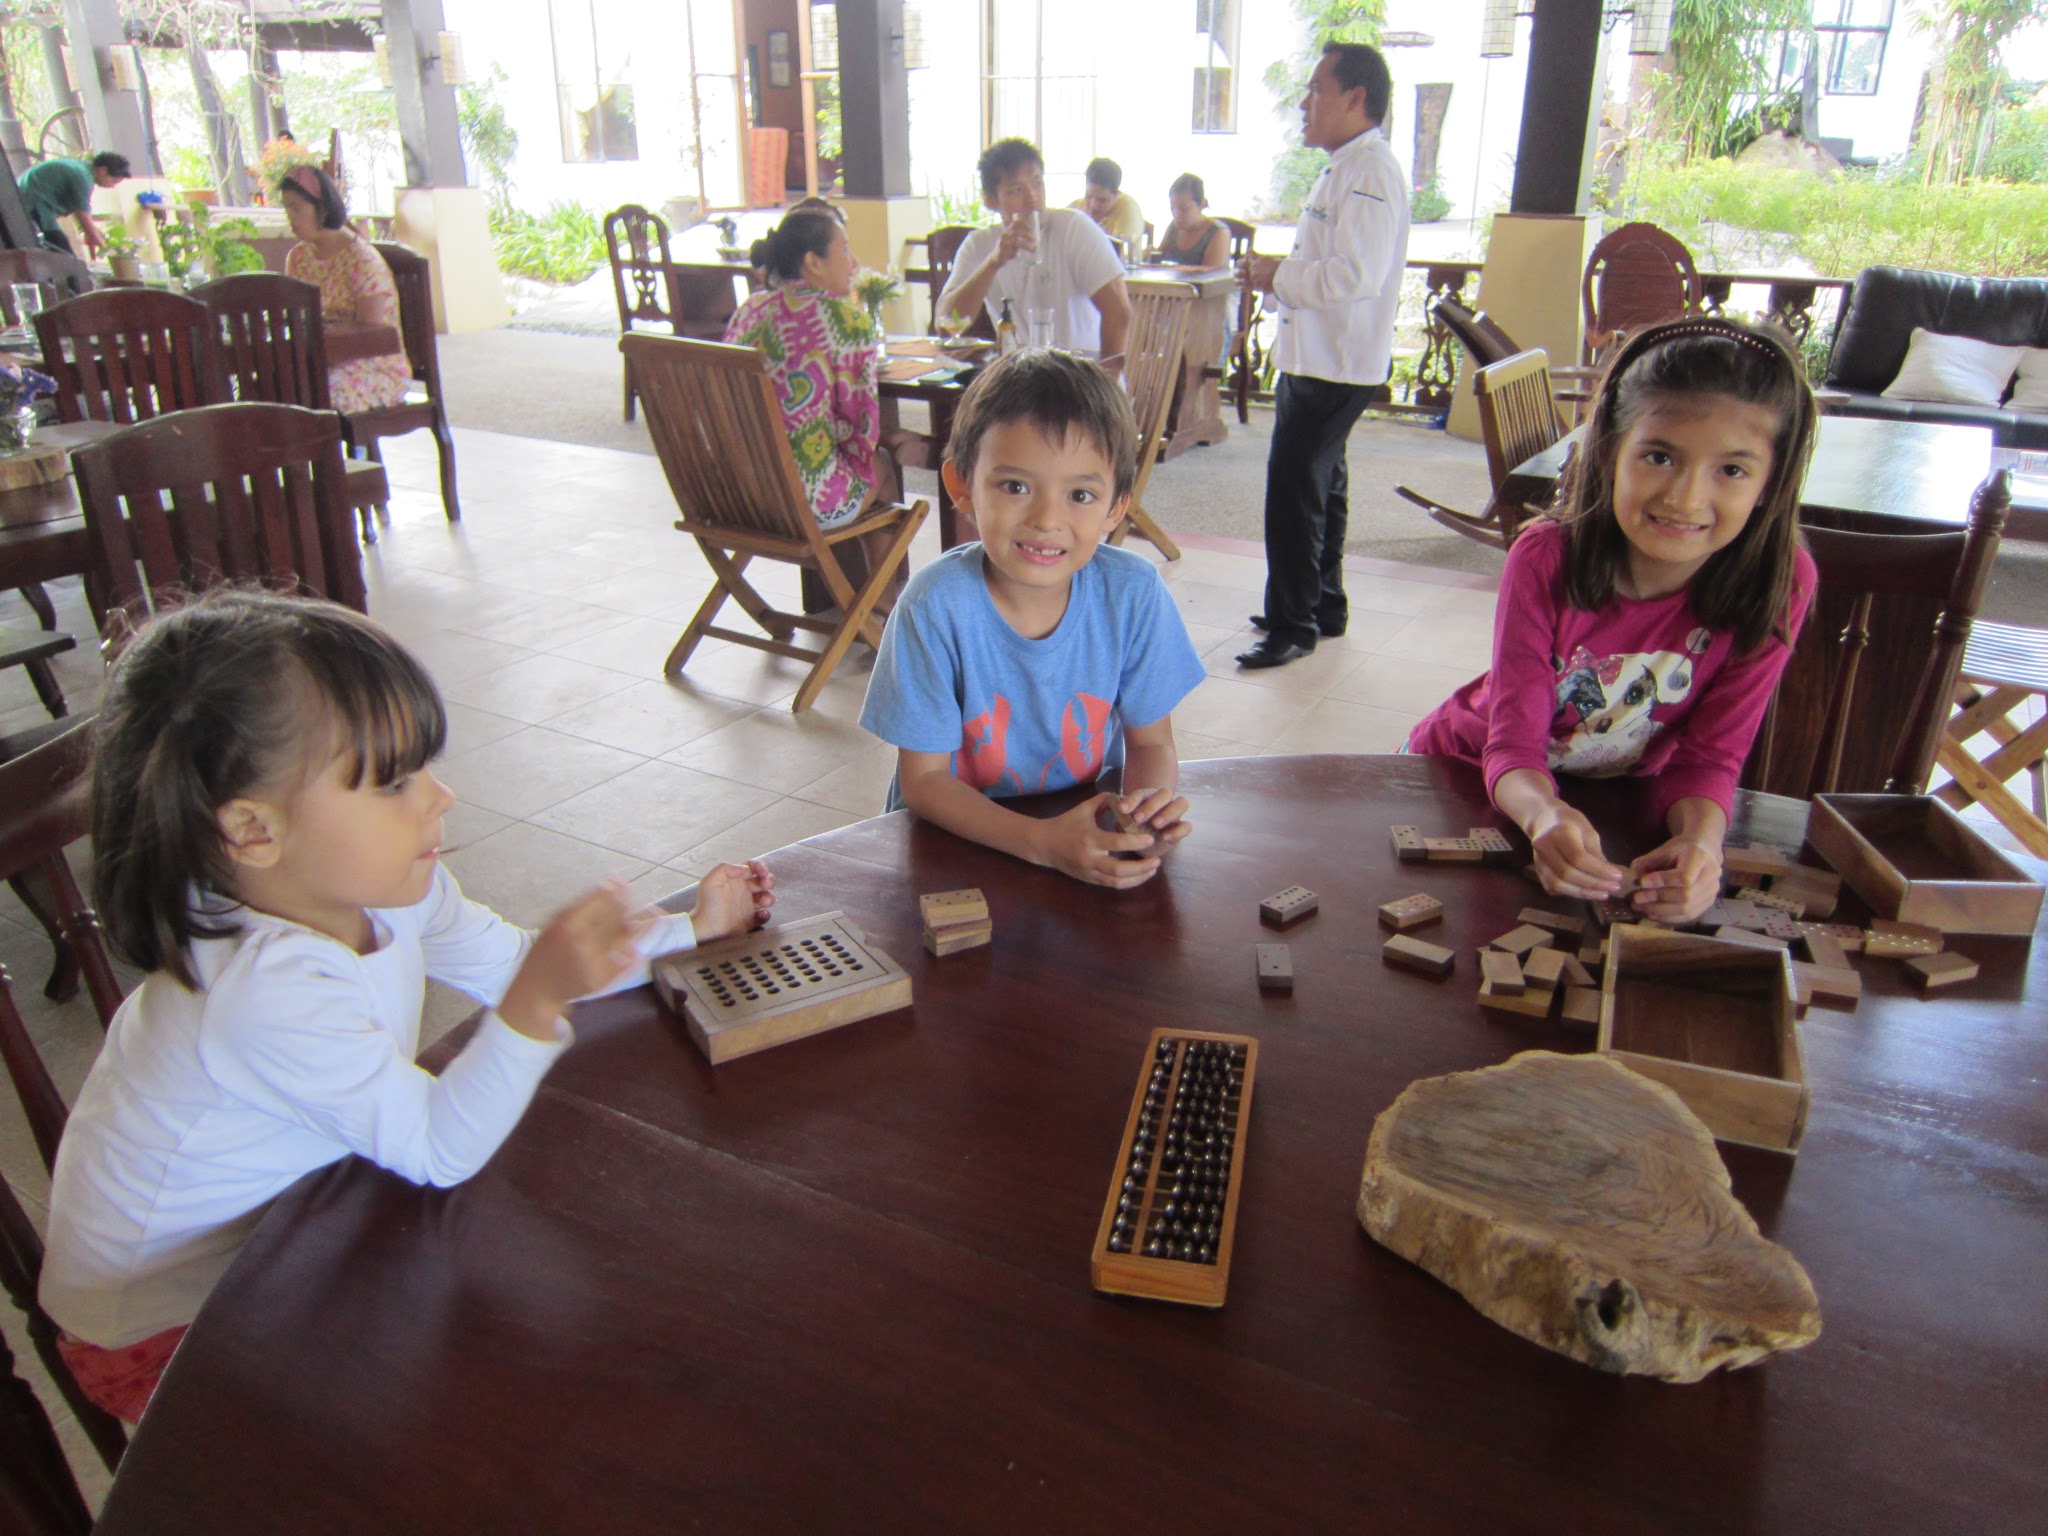 Games to play at the restaurant